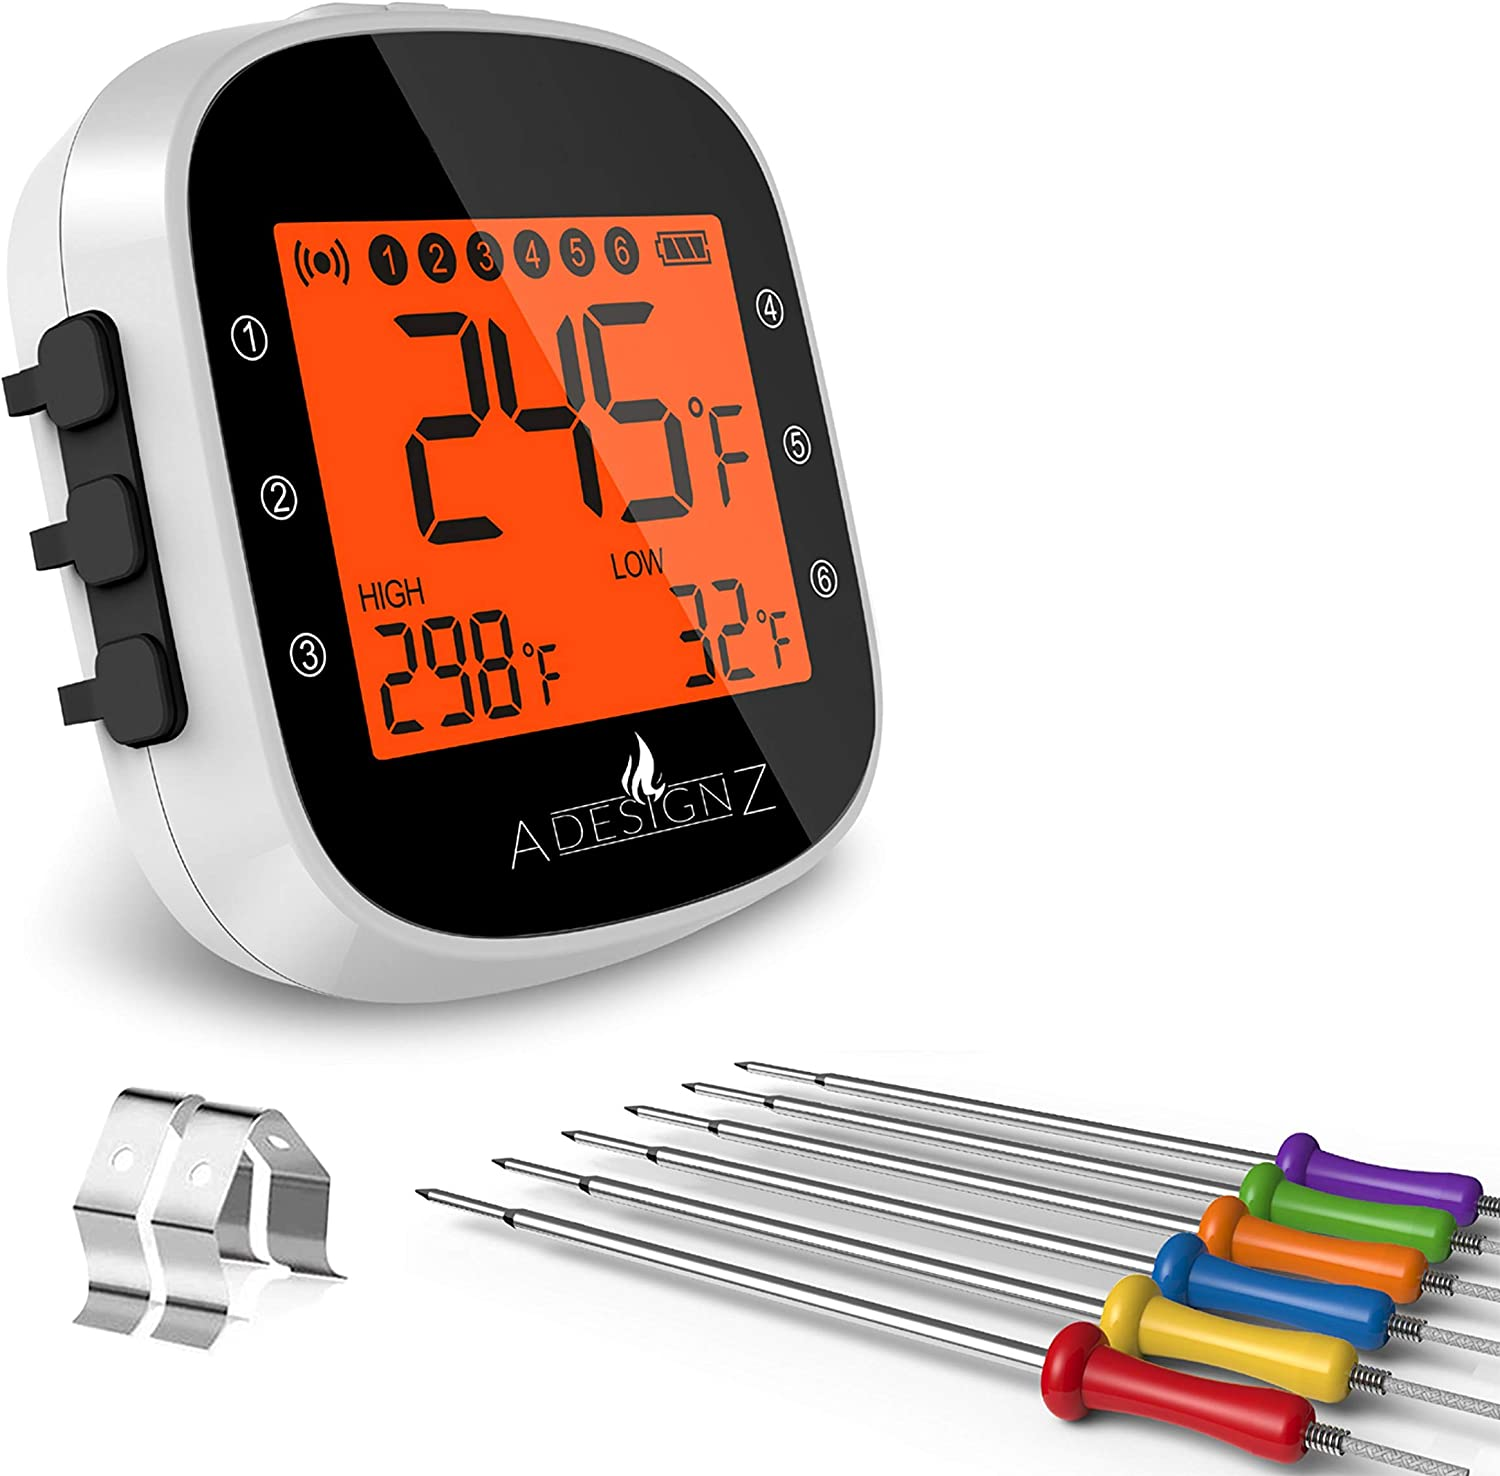 AdesignZ 6 Probe Wireless Meat Thermometer - Sleek Pearl White Cooking, Smoker & BBQ Thermometer Upgraded Long-Range Bluetooth Capability - Rechargeable Digital Waterproof Grill Meat Probe Thermometer